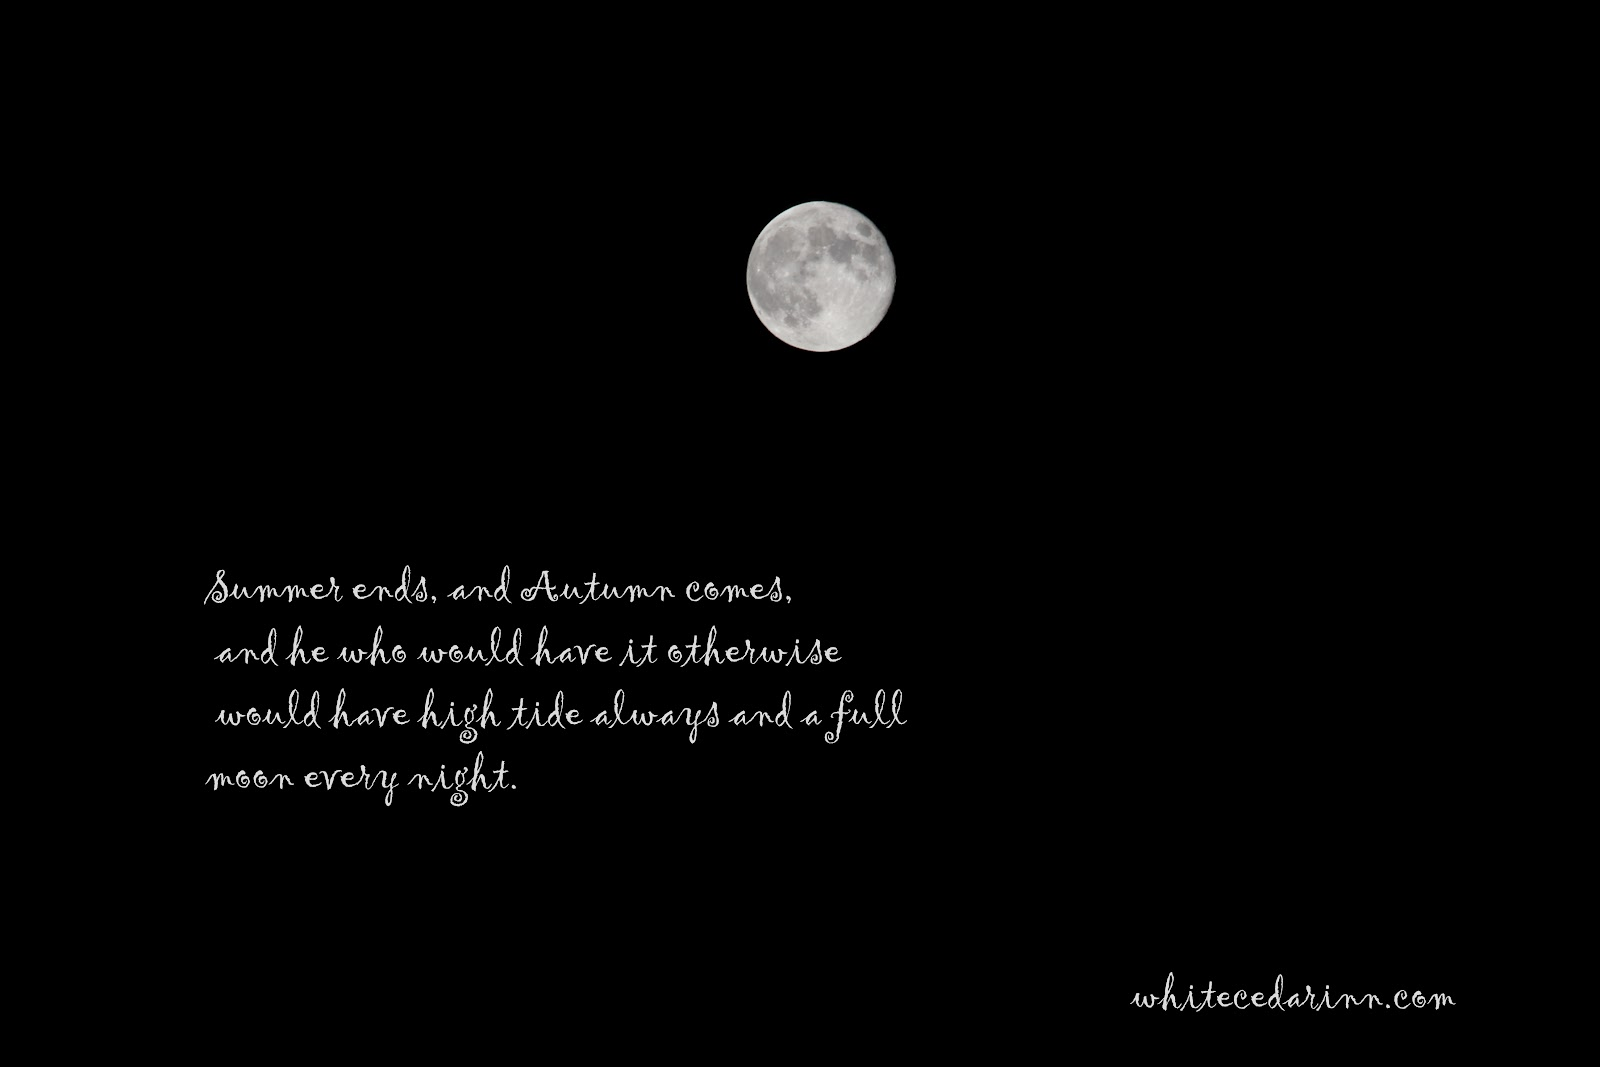 Moon Quotes Tumblr White Cedar Inn Today A Full Moon In Autumn